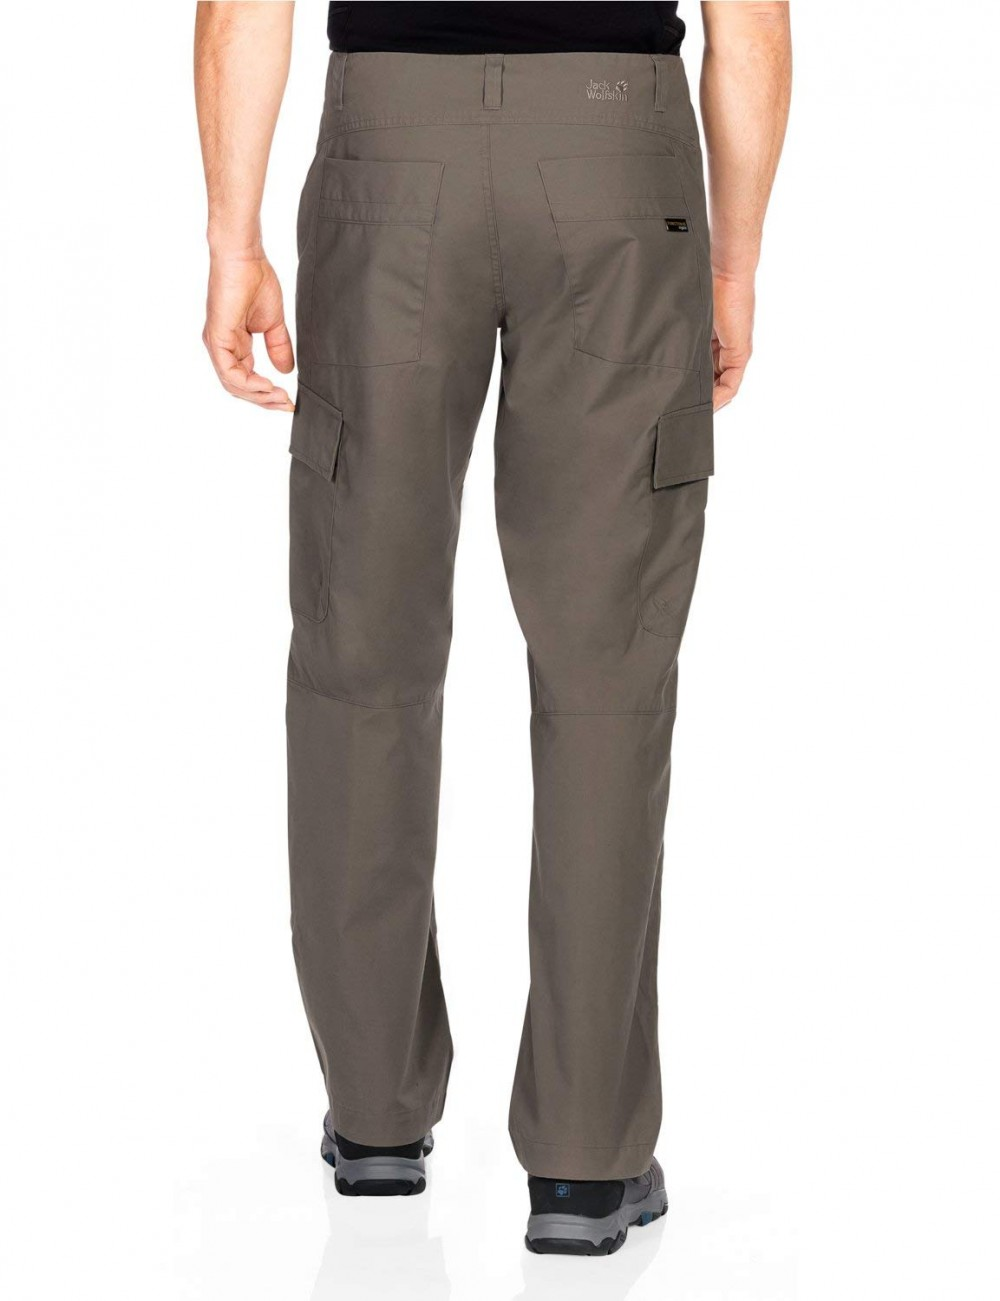 Штаны JACK WOLFSKIN North evo pants (размер 50/L) - 1